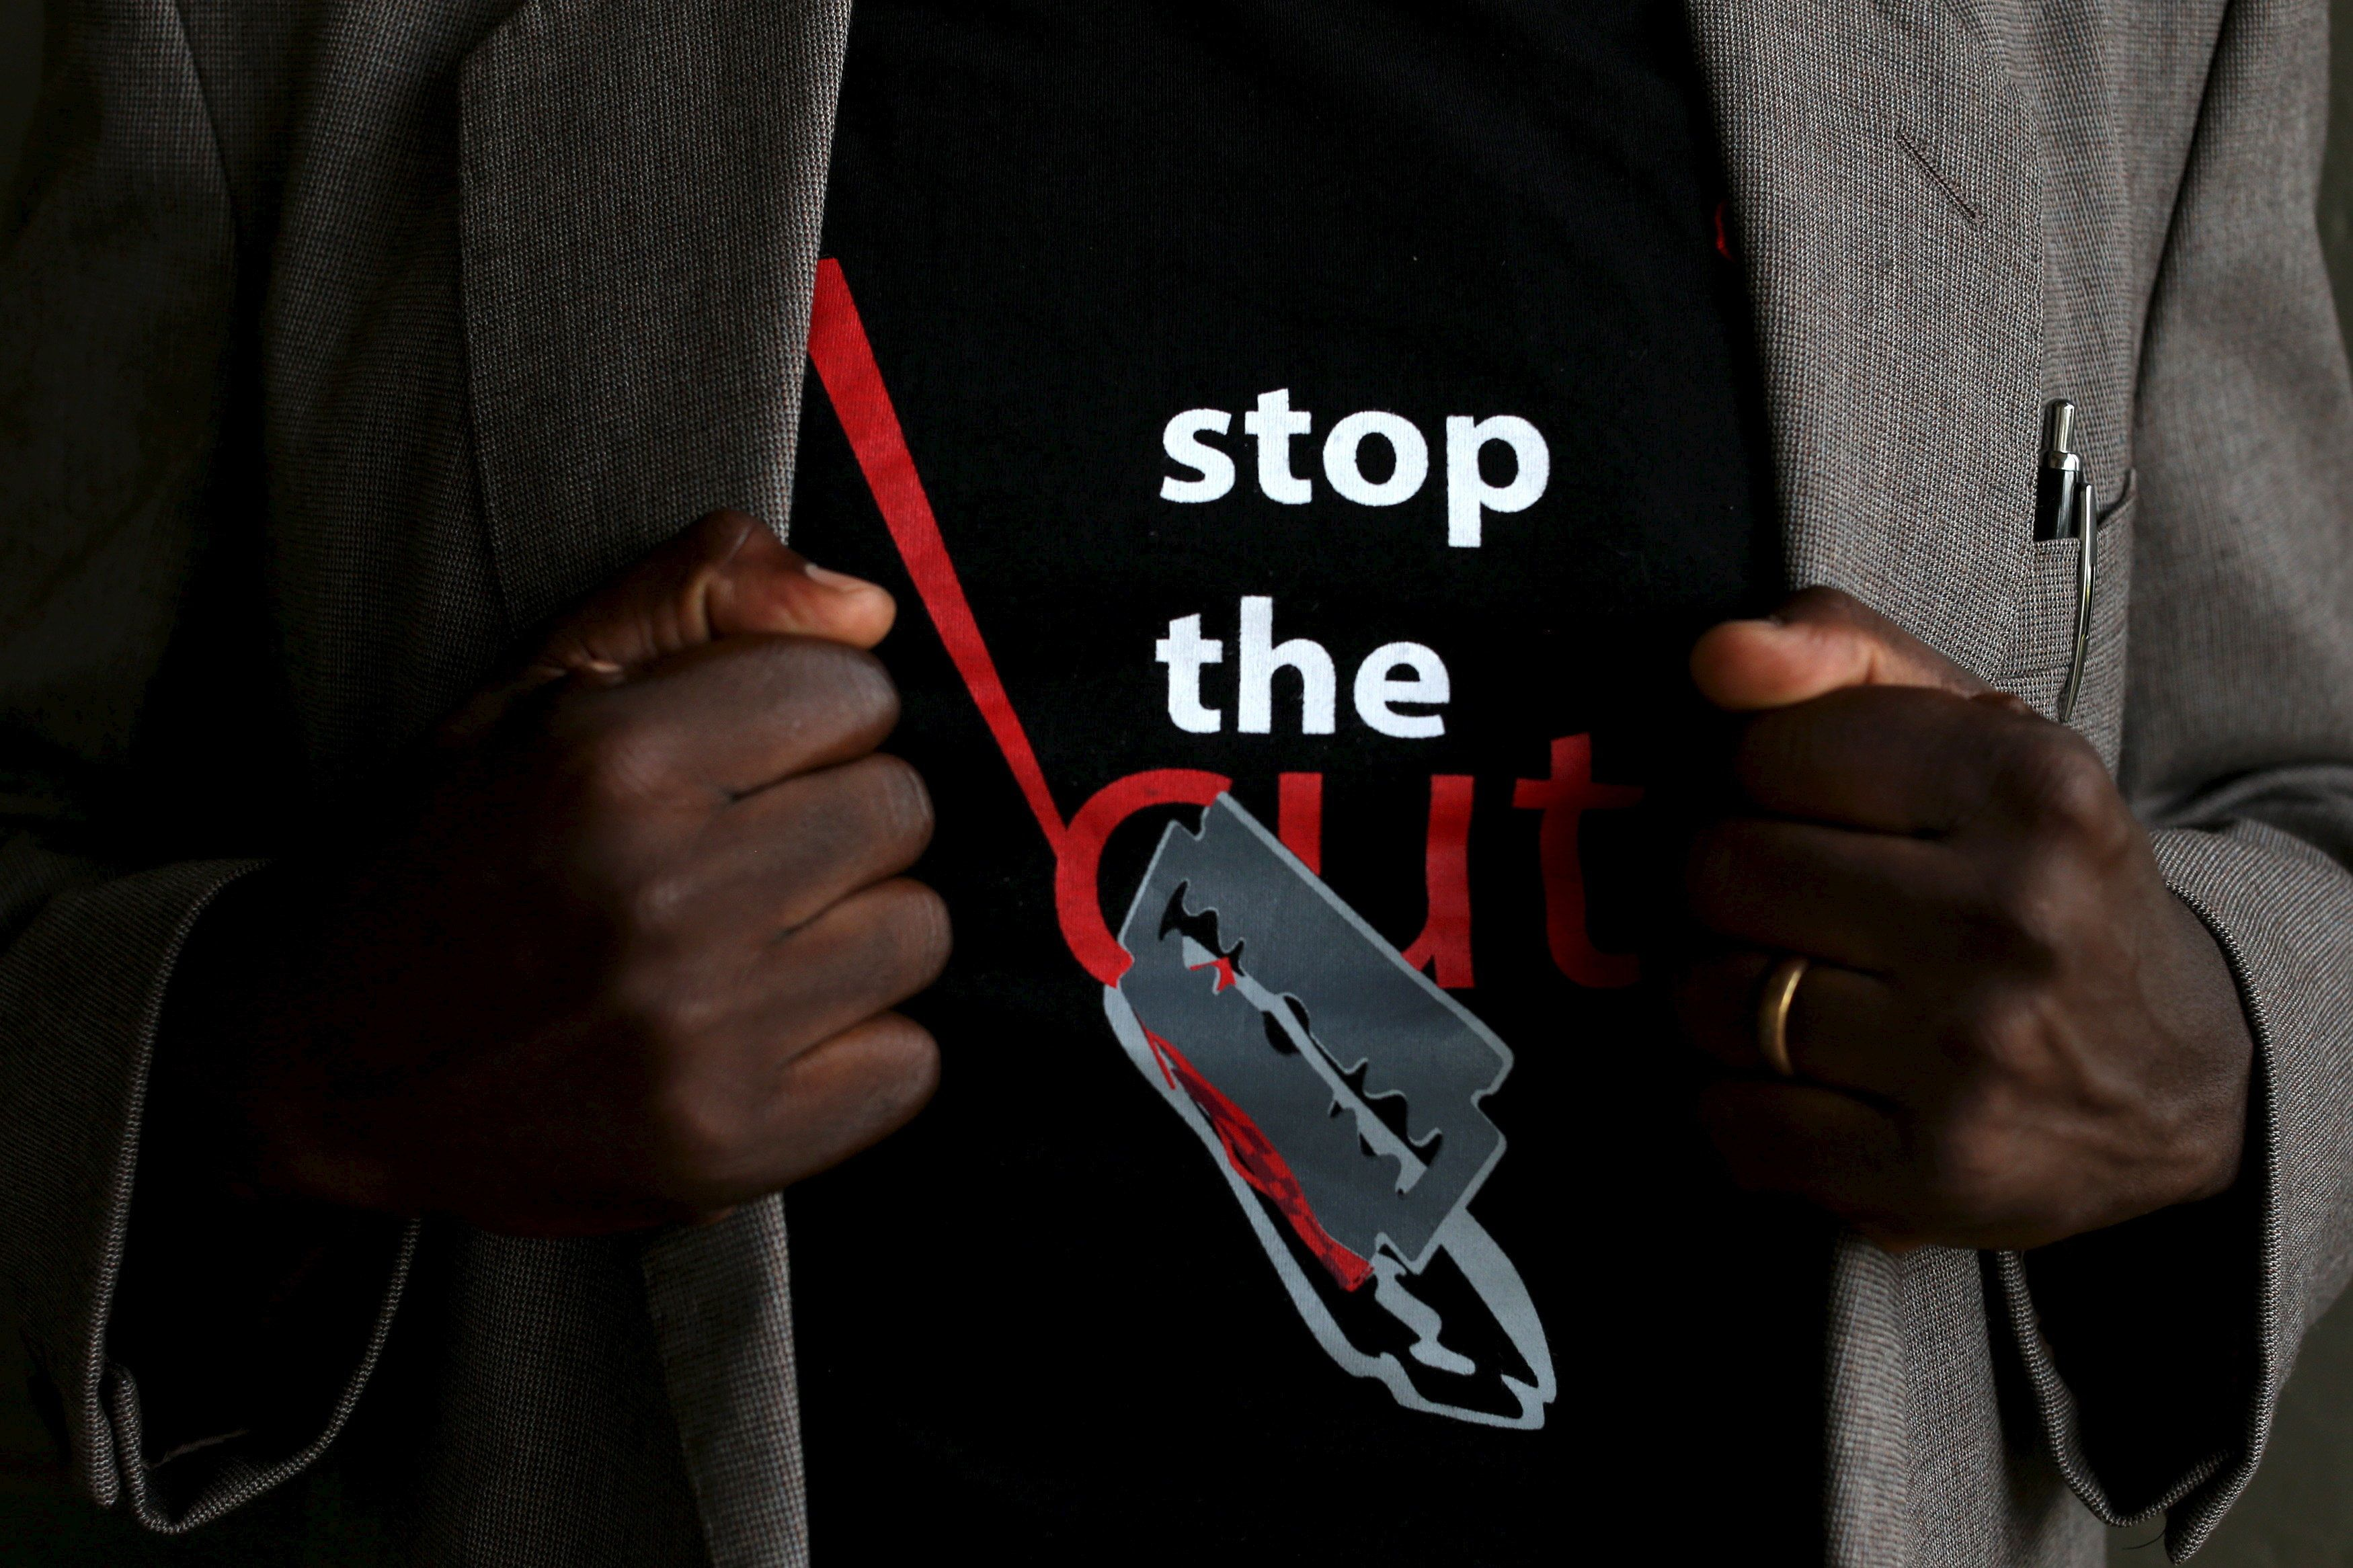 Kenyan Parents Fearing Ban On Female Genital Mutilation Secretly Get Girls Cut At